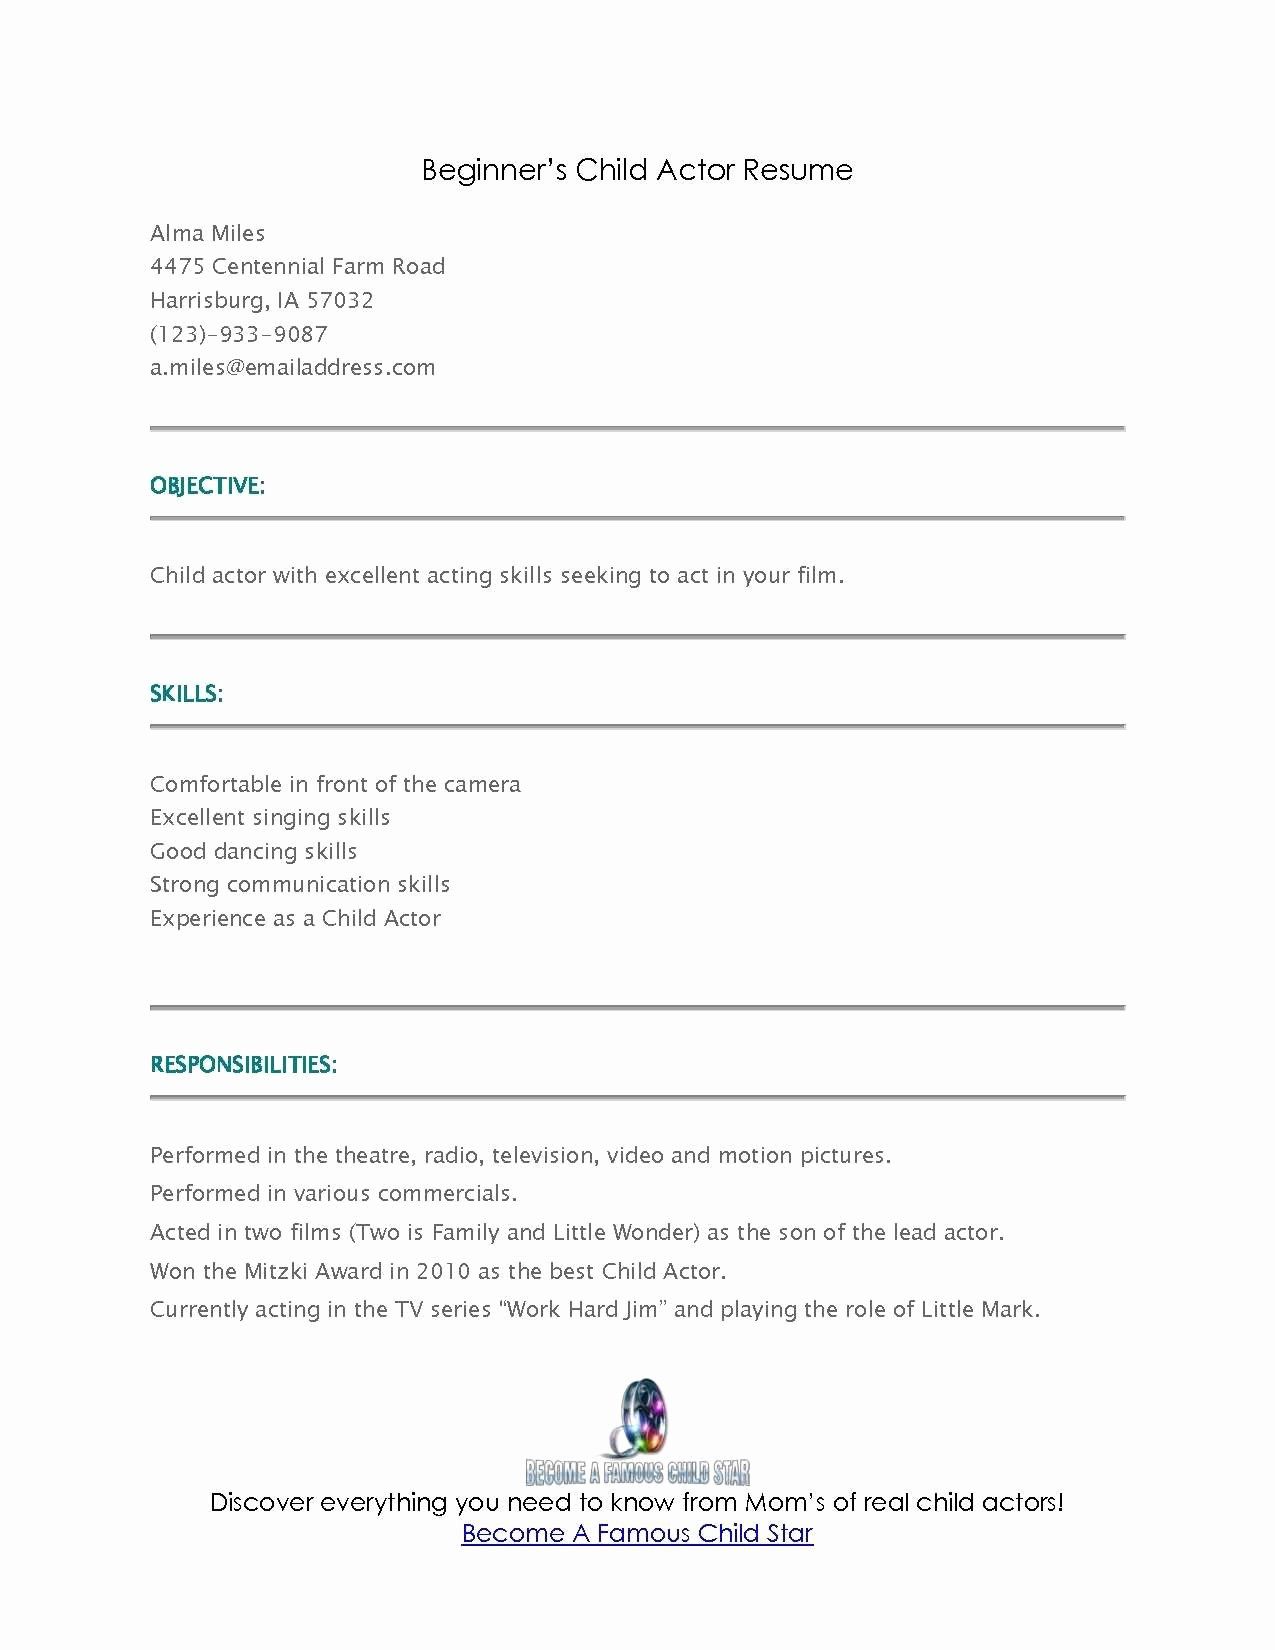 Beginner Acting Resume Template Unique Acting Resume Sample for Beginners How to Make An Acting